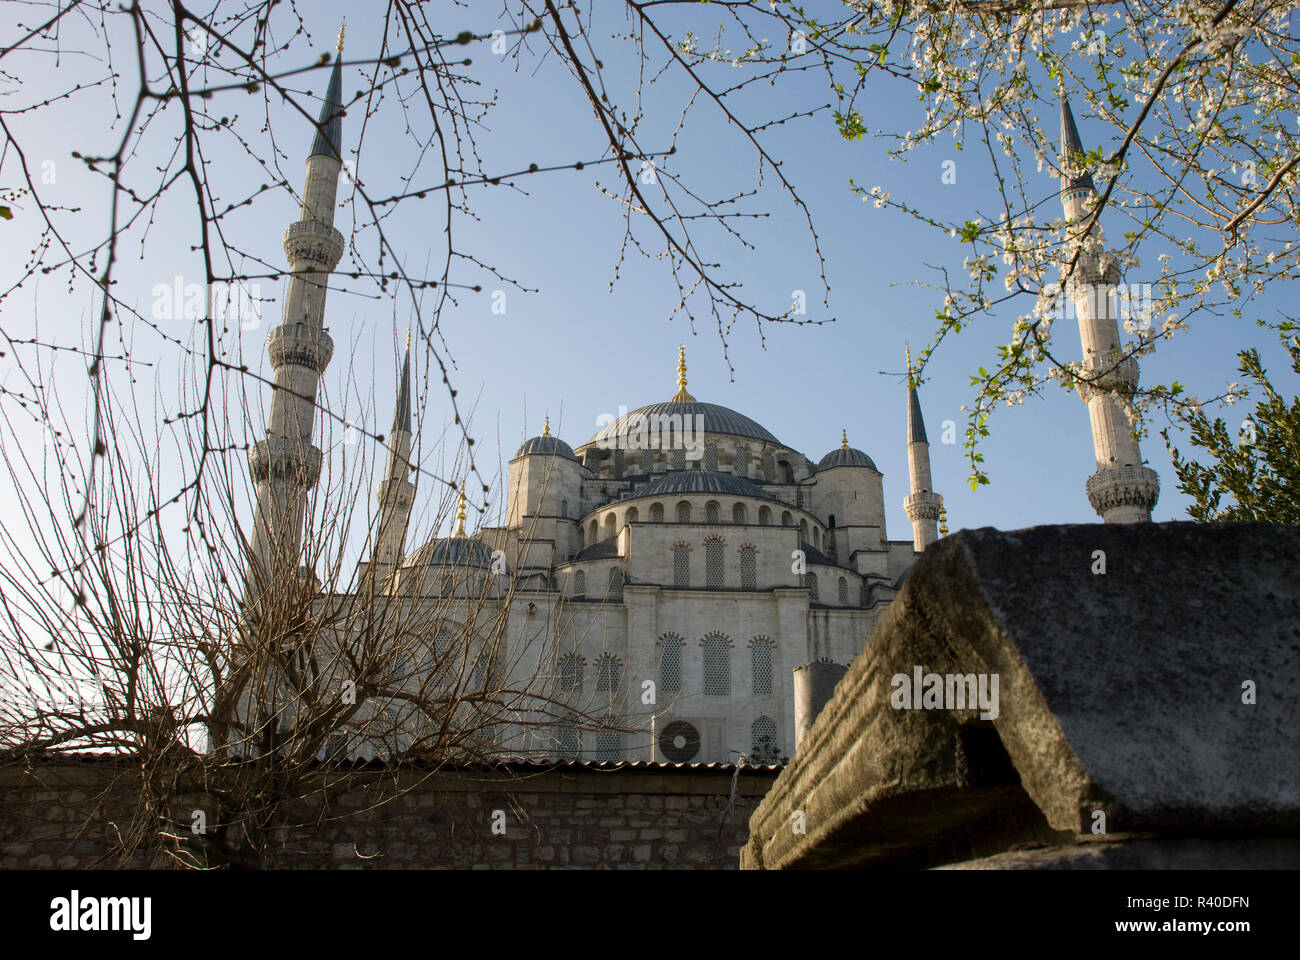 blue mosque in istanbul,turkey - Stock Image